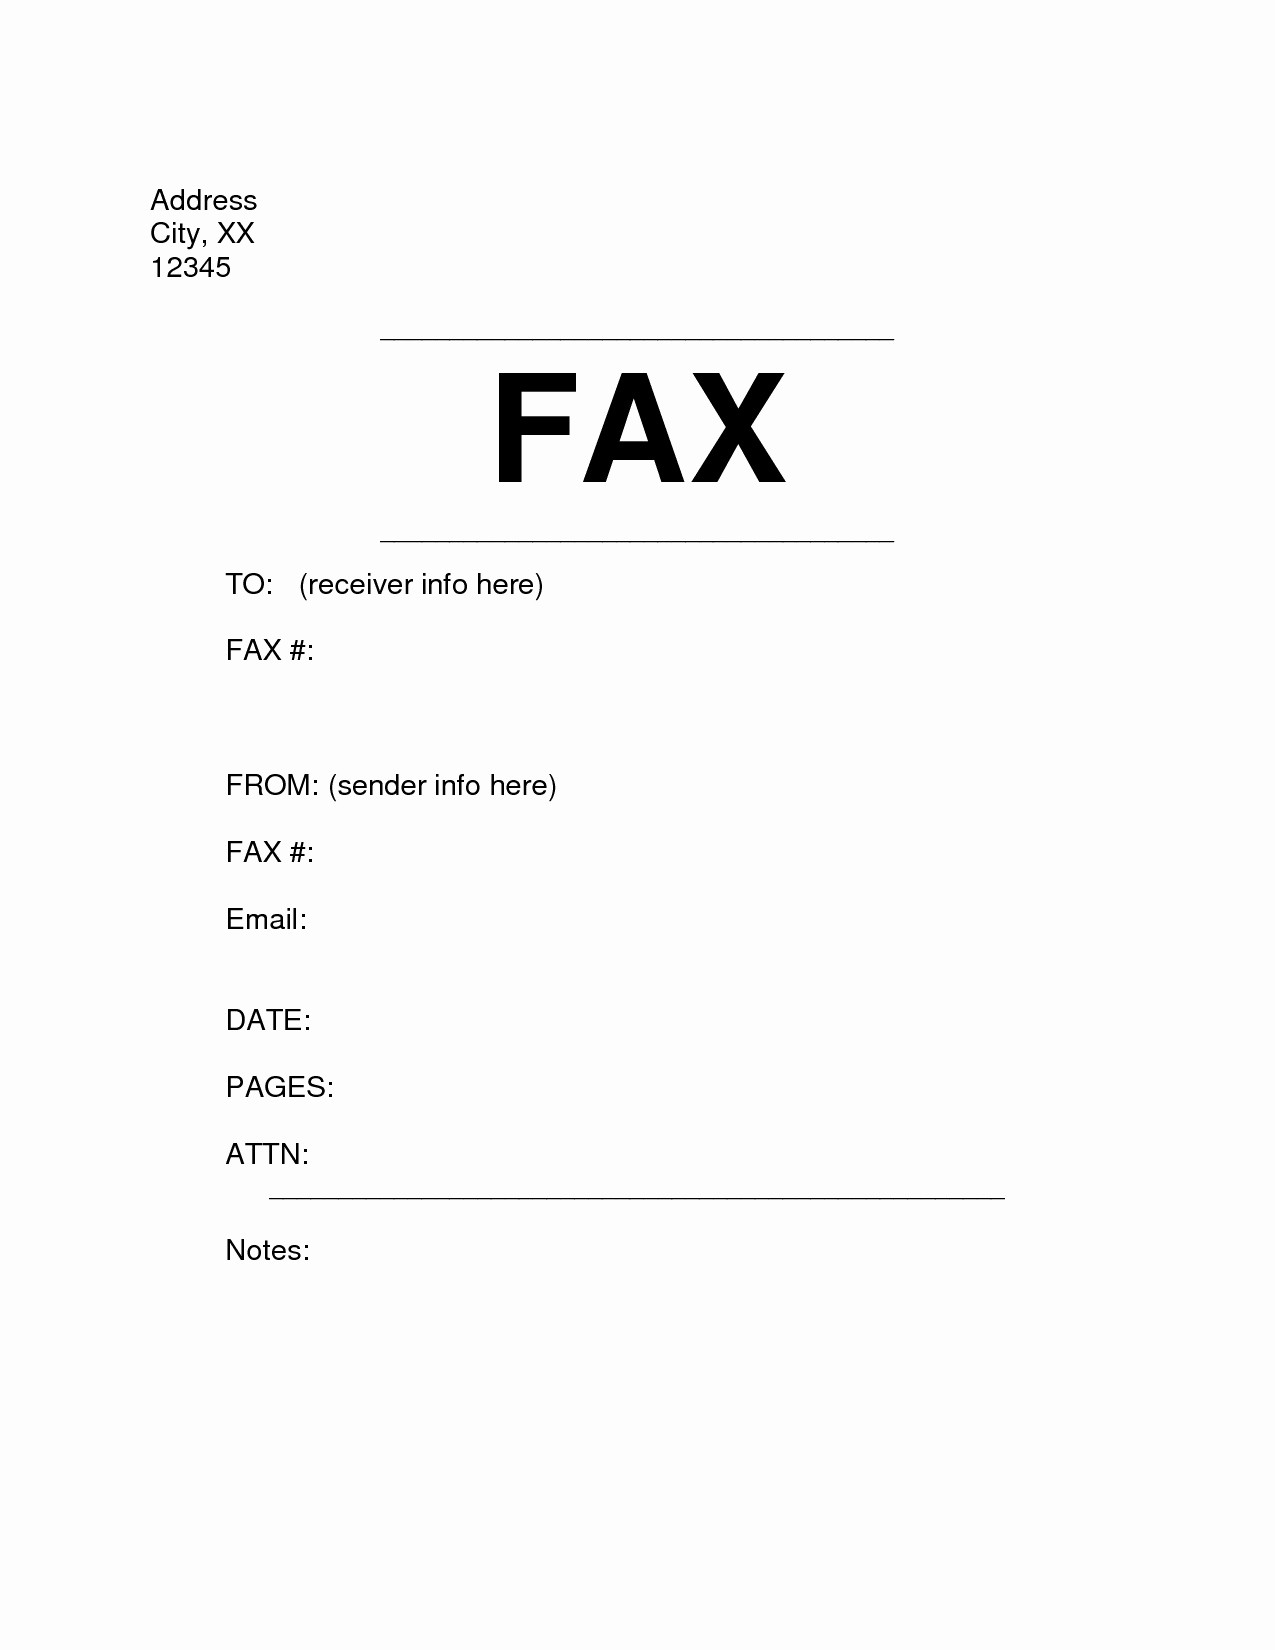 Fax Cover Sheet Microsoft Office Inspirational Microsoft Fice Fax Cover Sheet Template